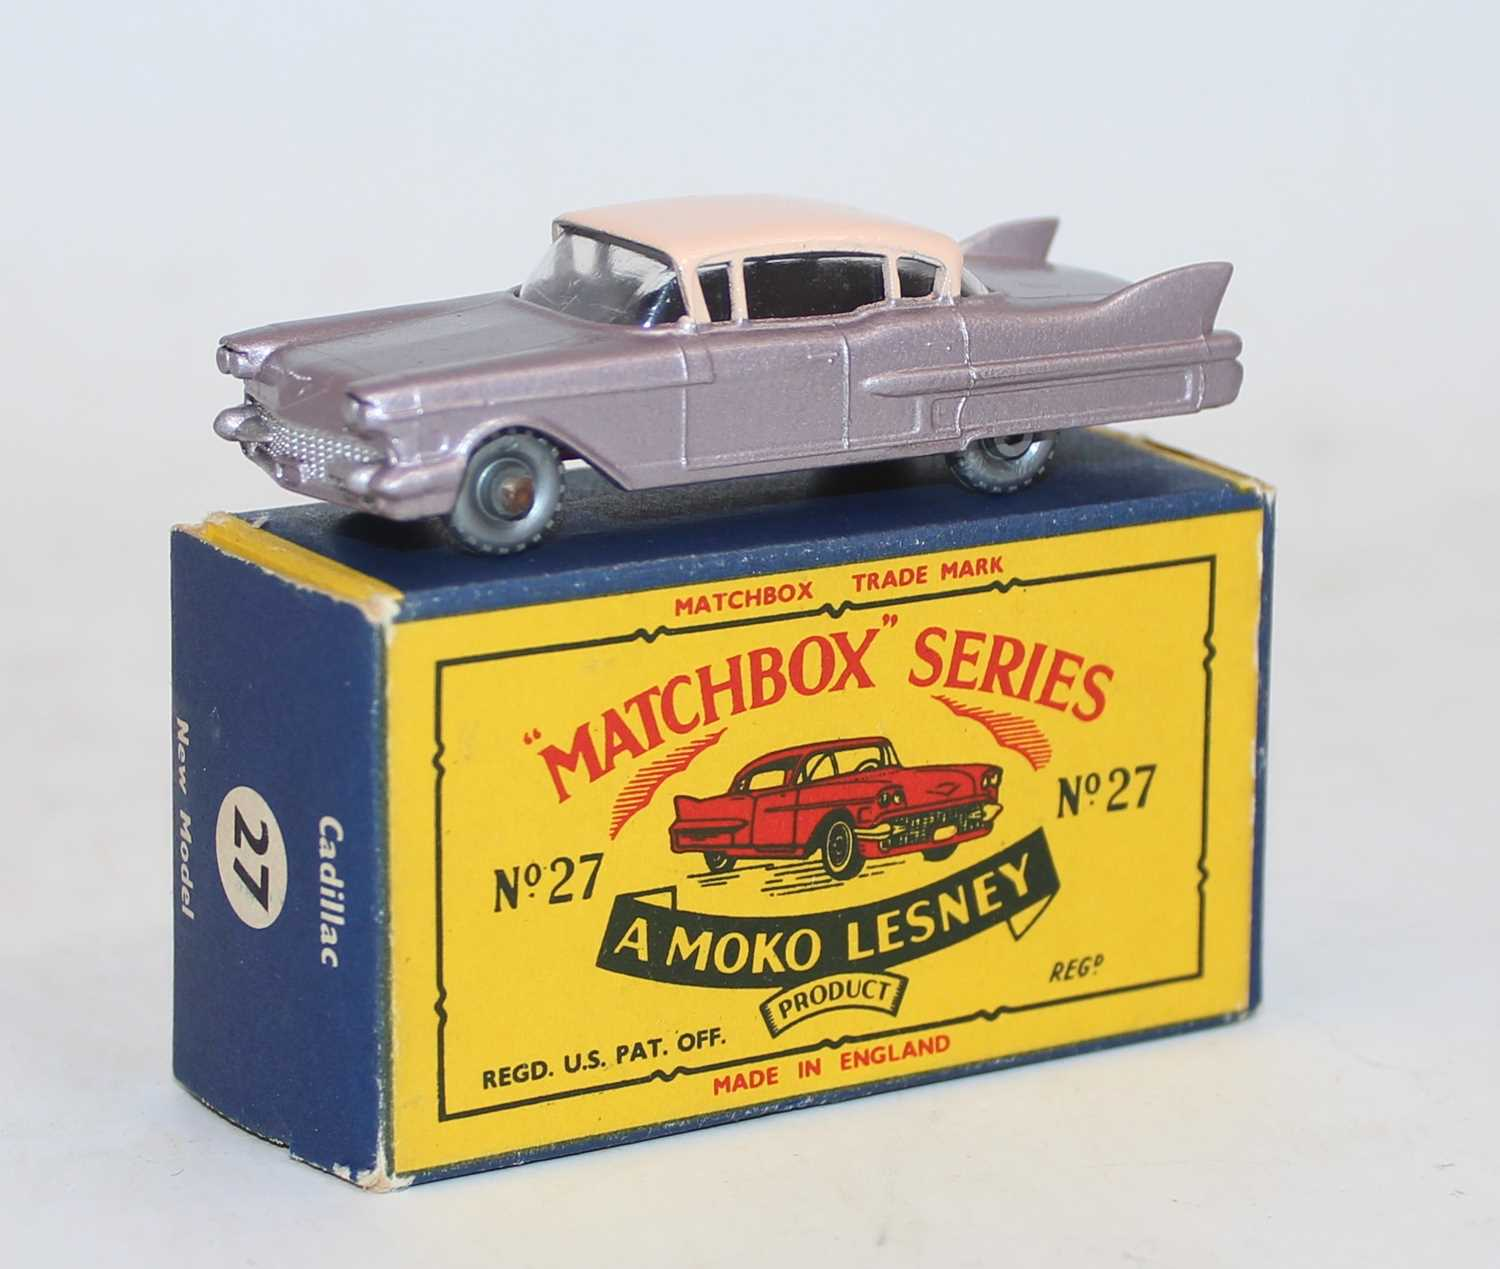 Matchbox Lesney 1-75 series No.27C Cadillac Sedan in metallic lilac body with pink roof and